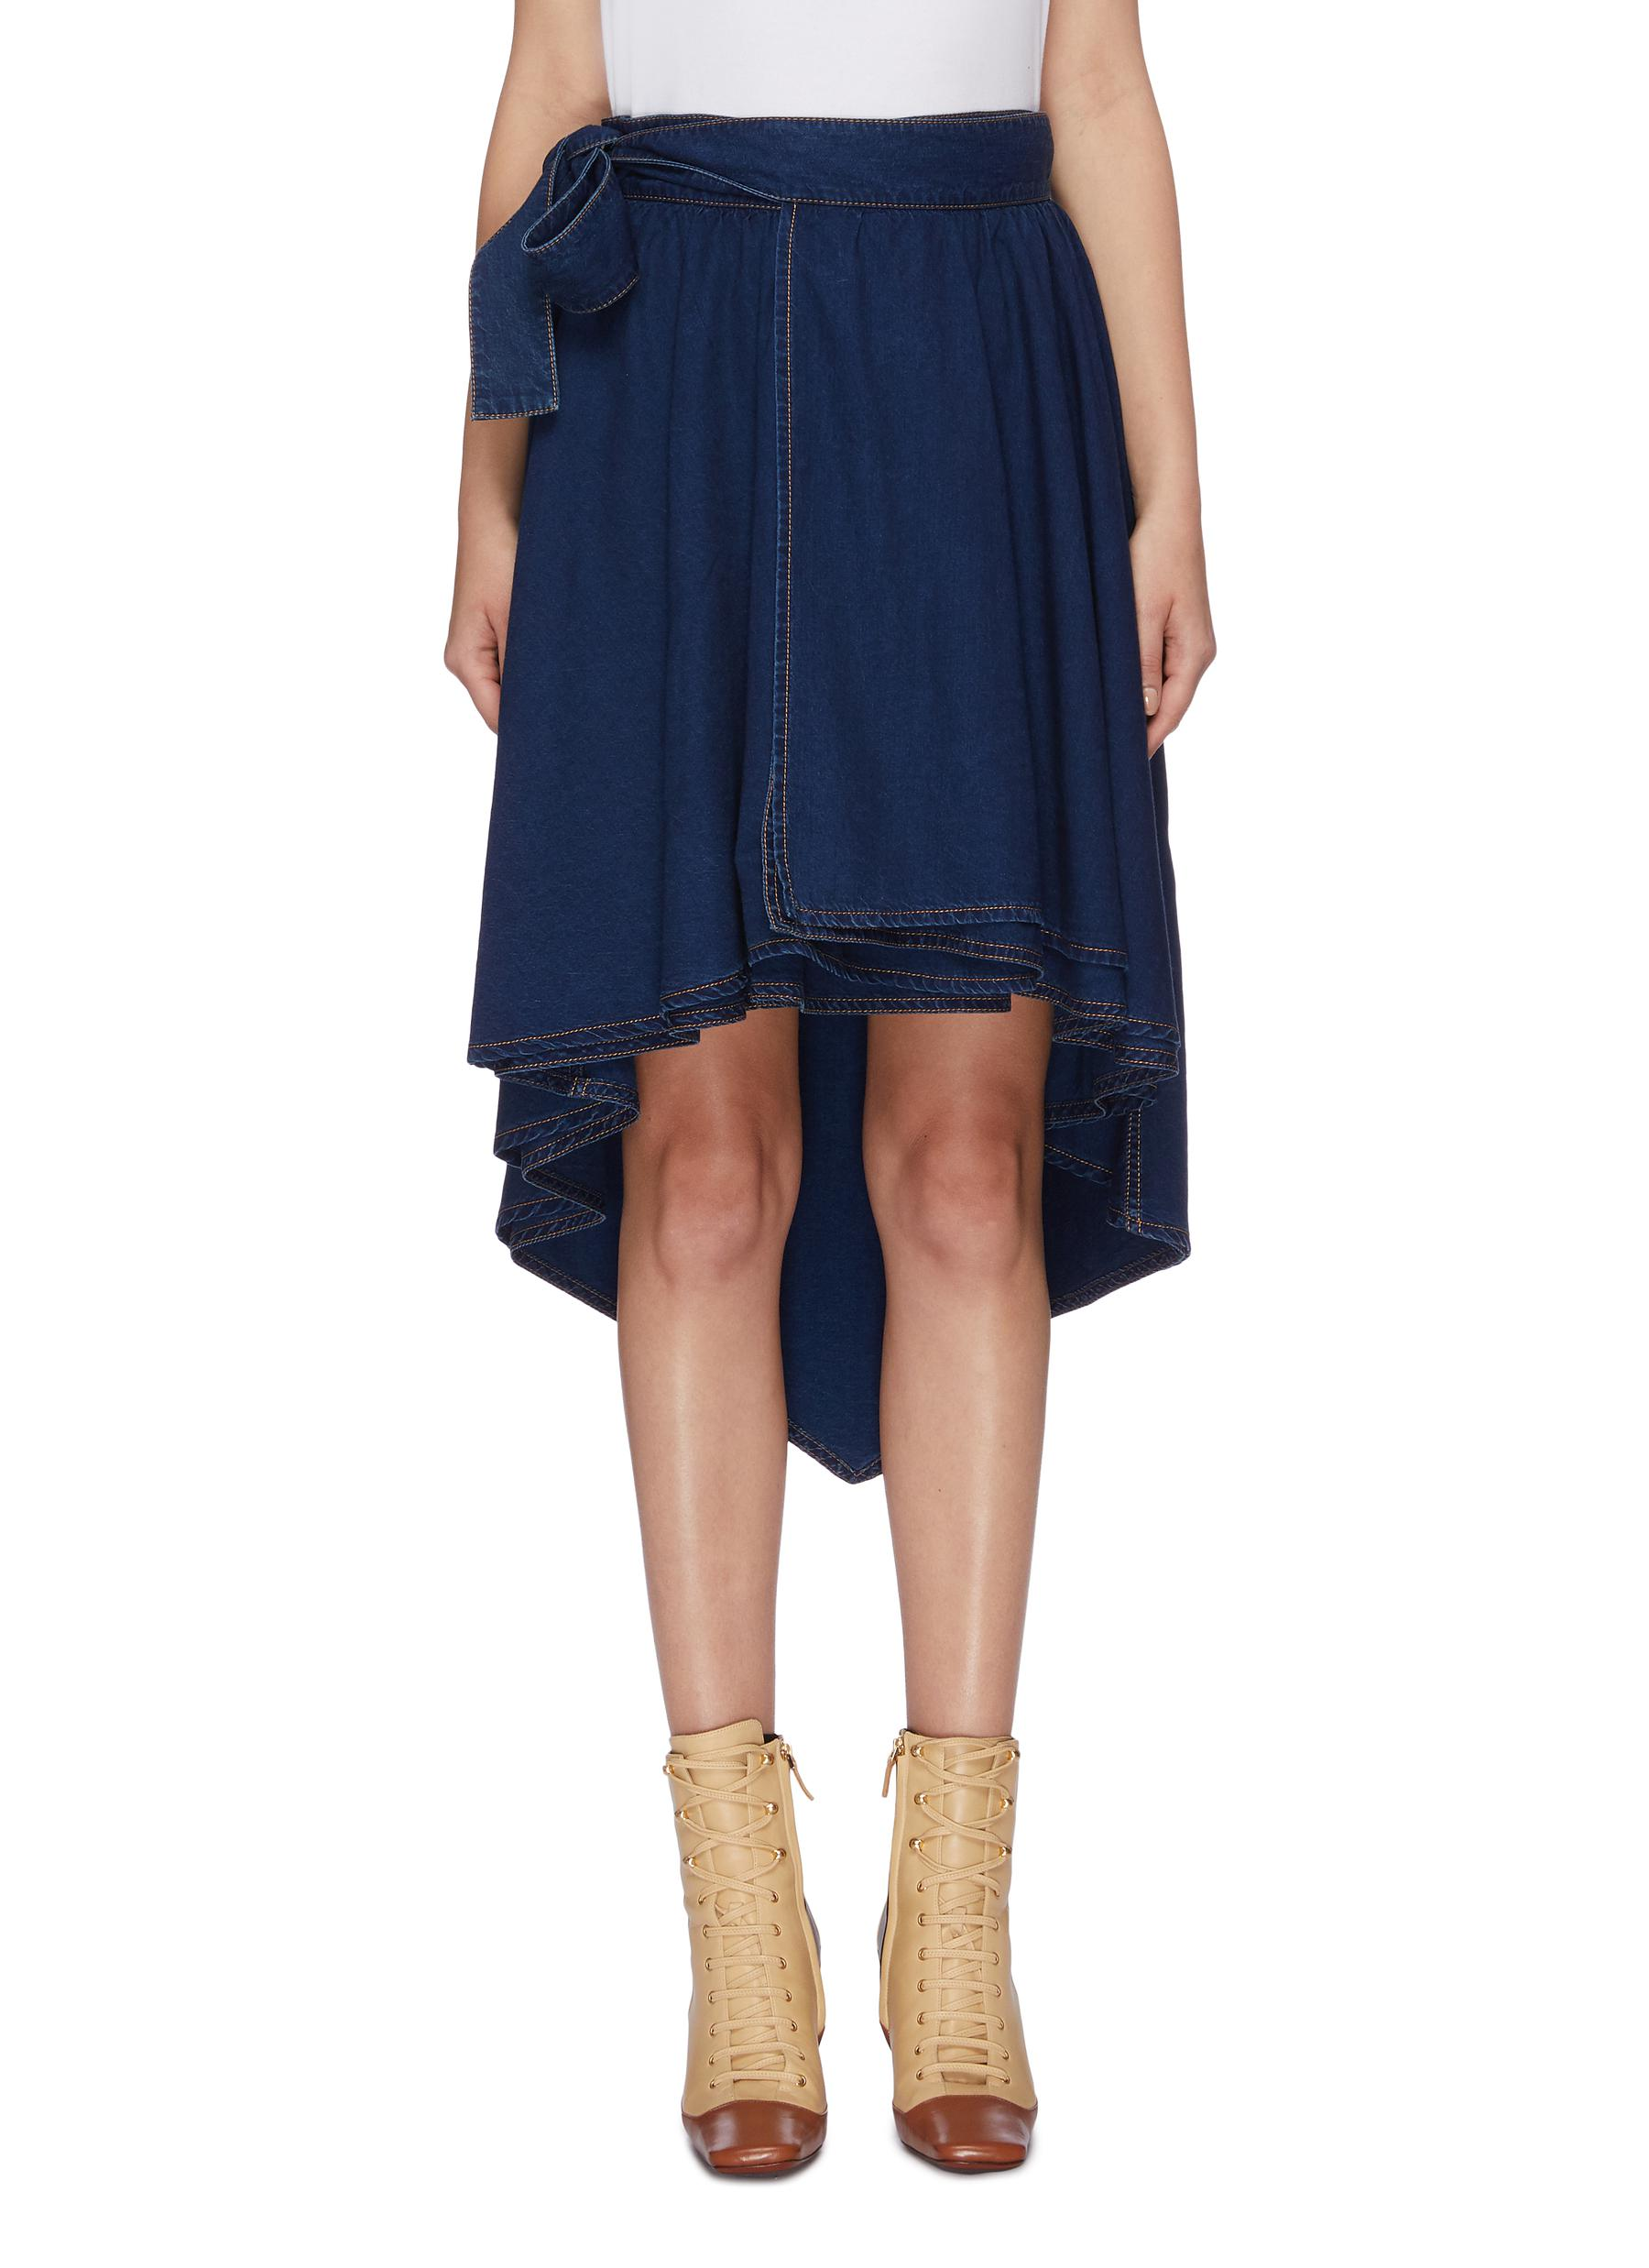 Belted high-low chambray skirt by Sonia Rykiel